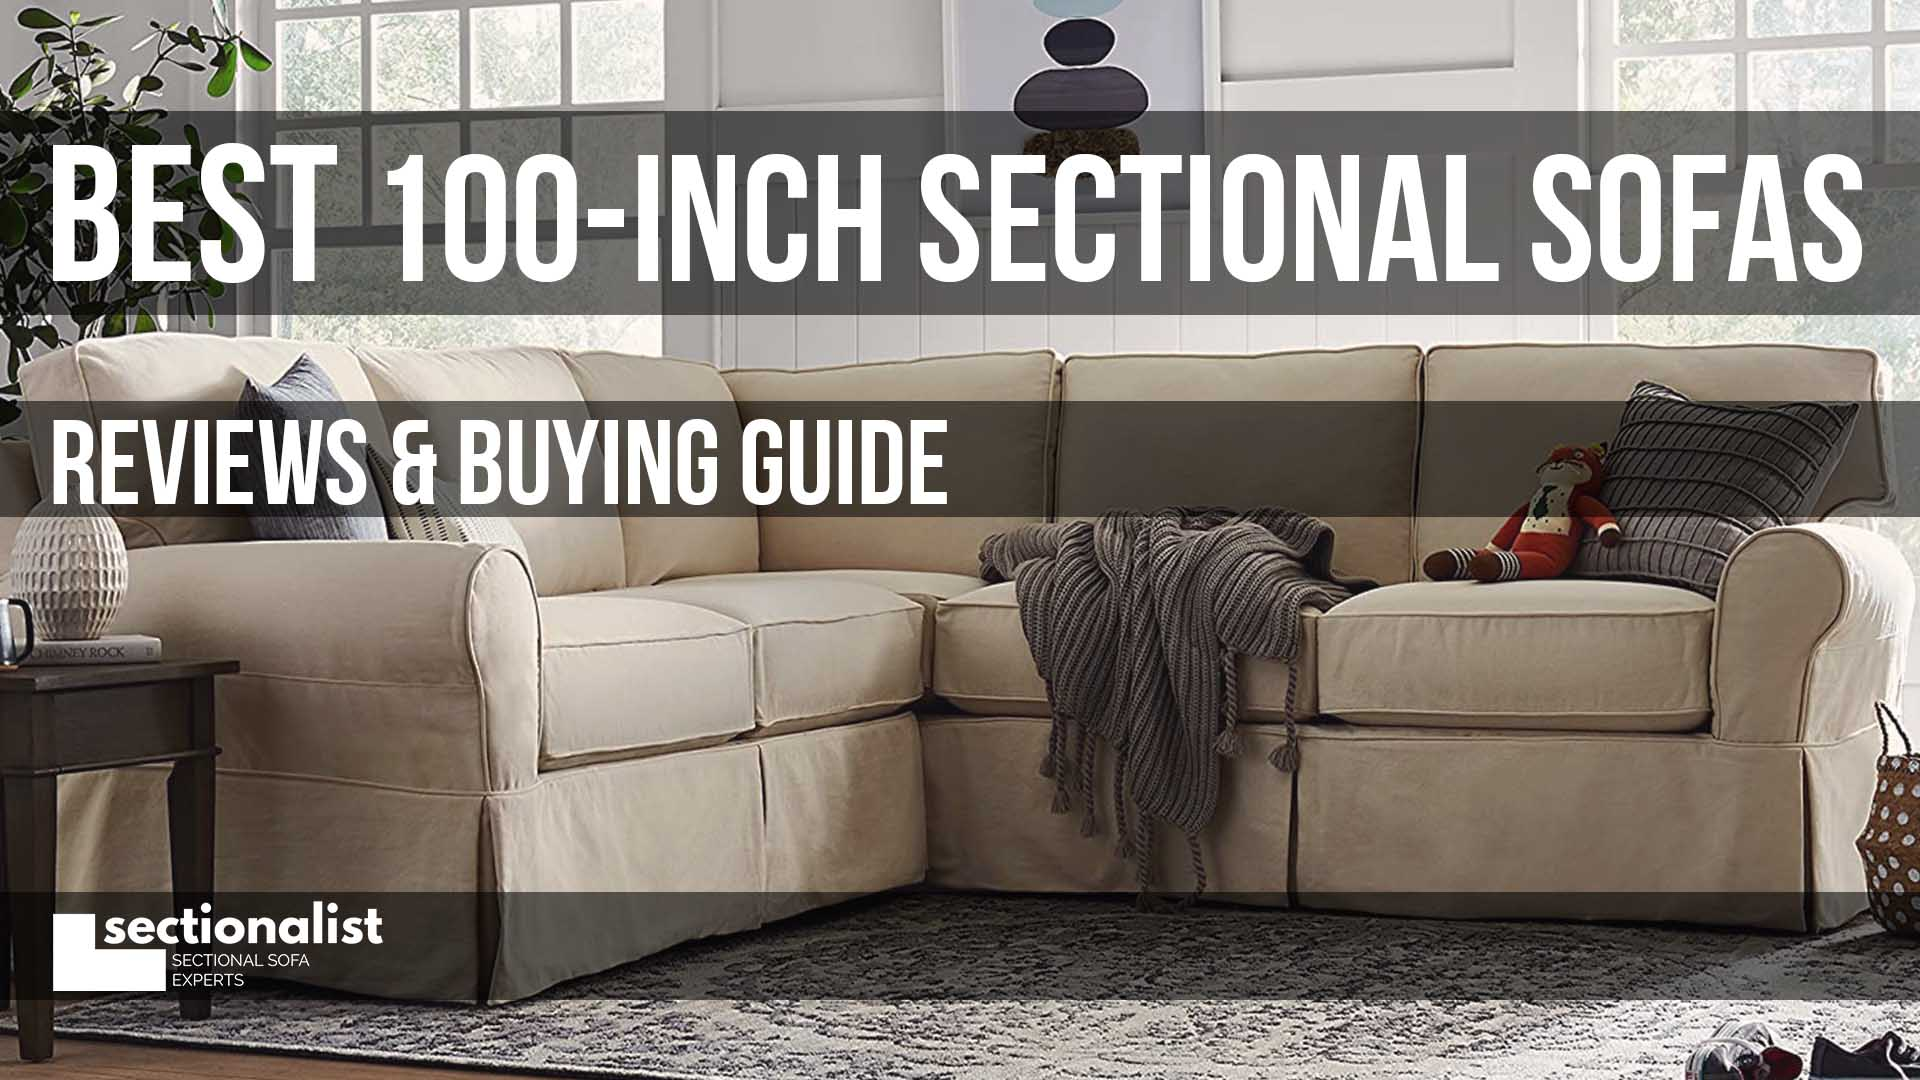 best 100 inch sectional sofas 2021